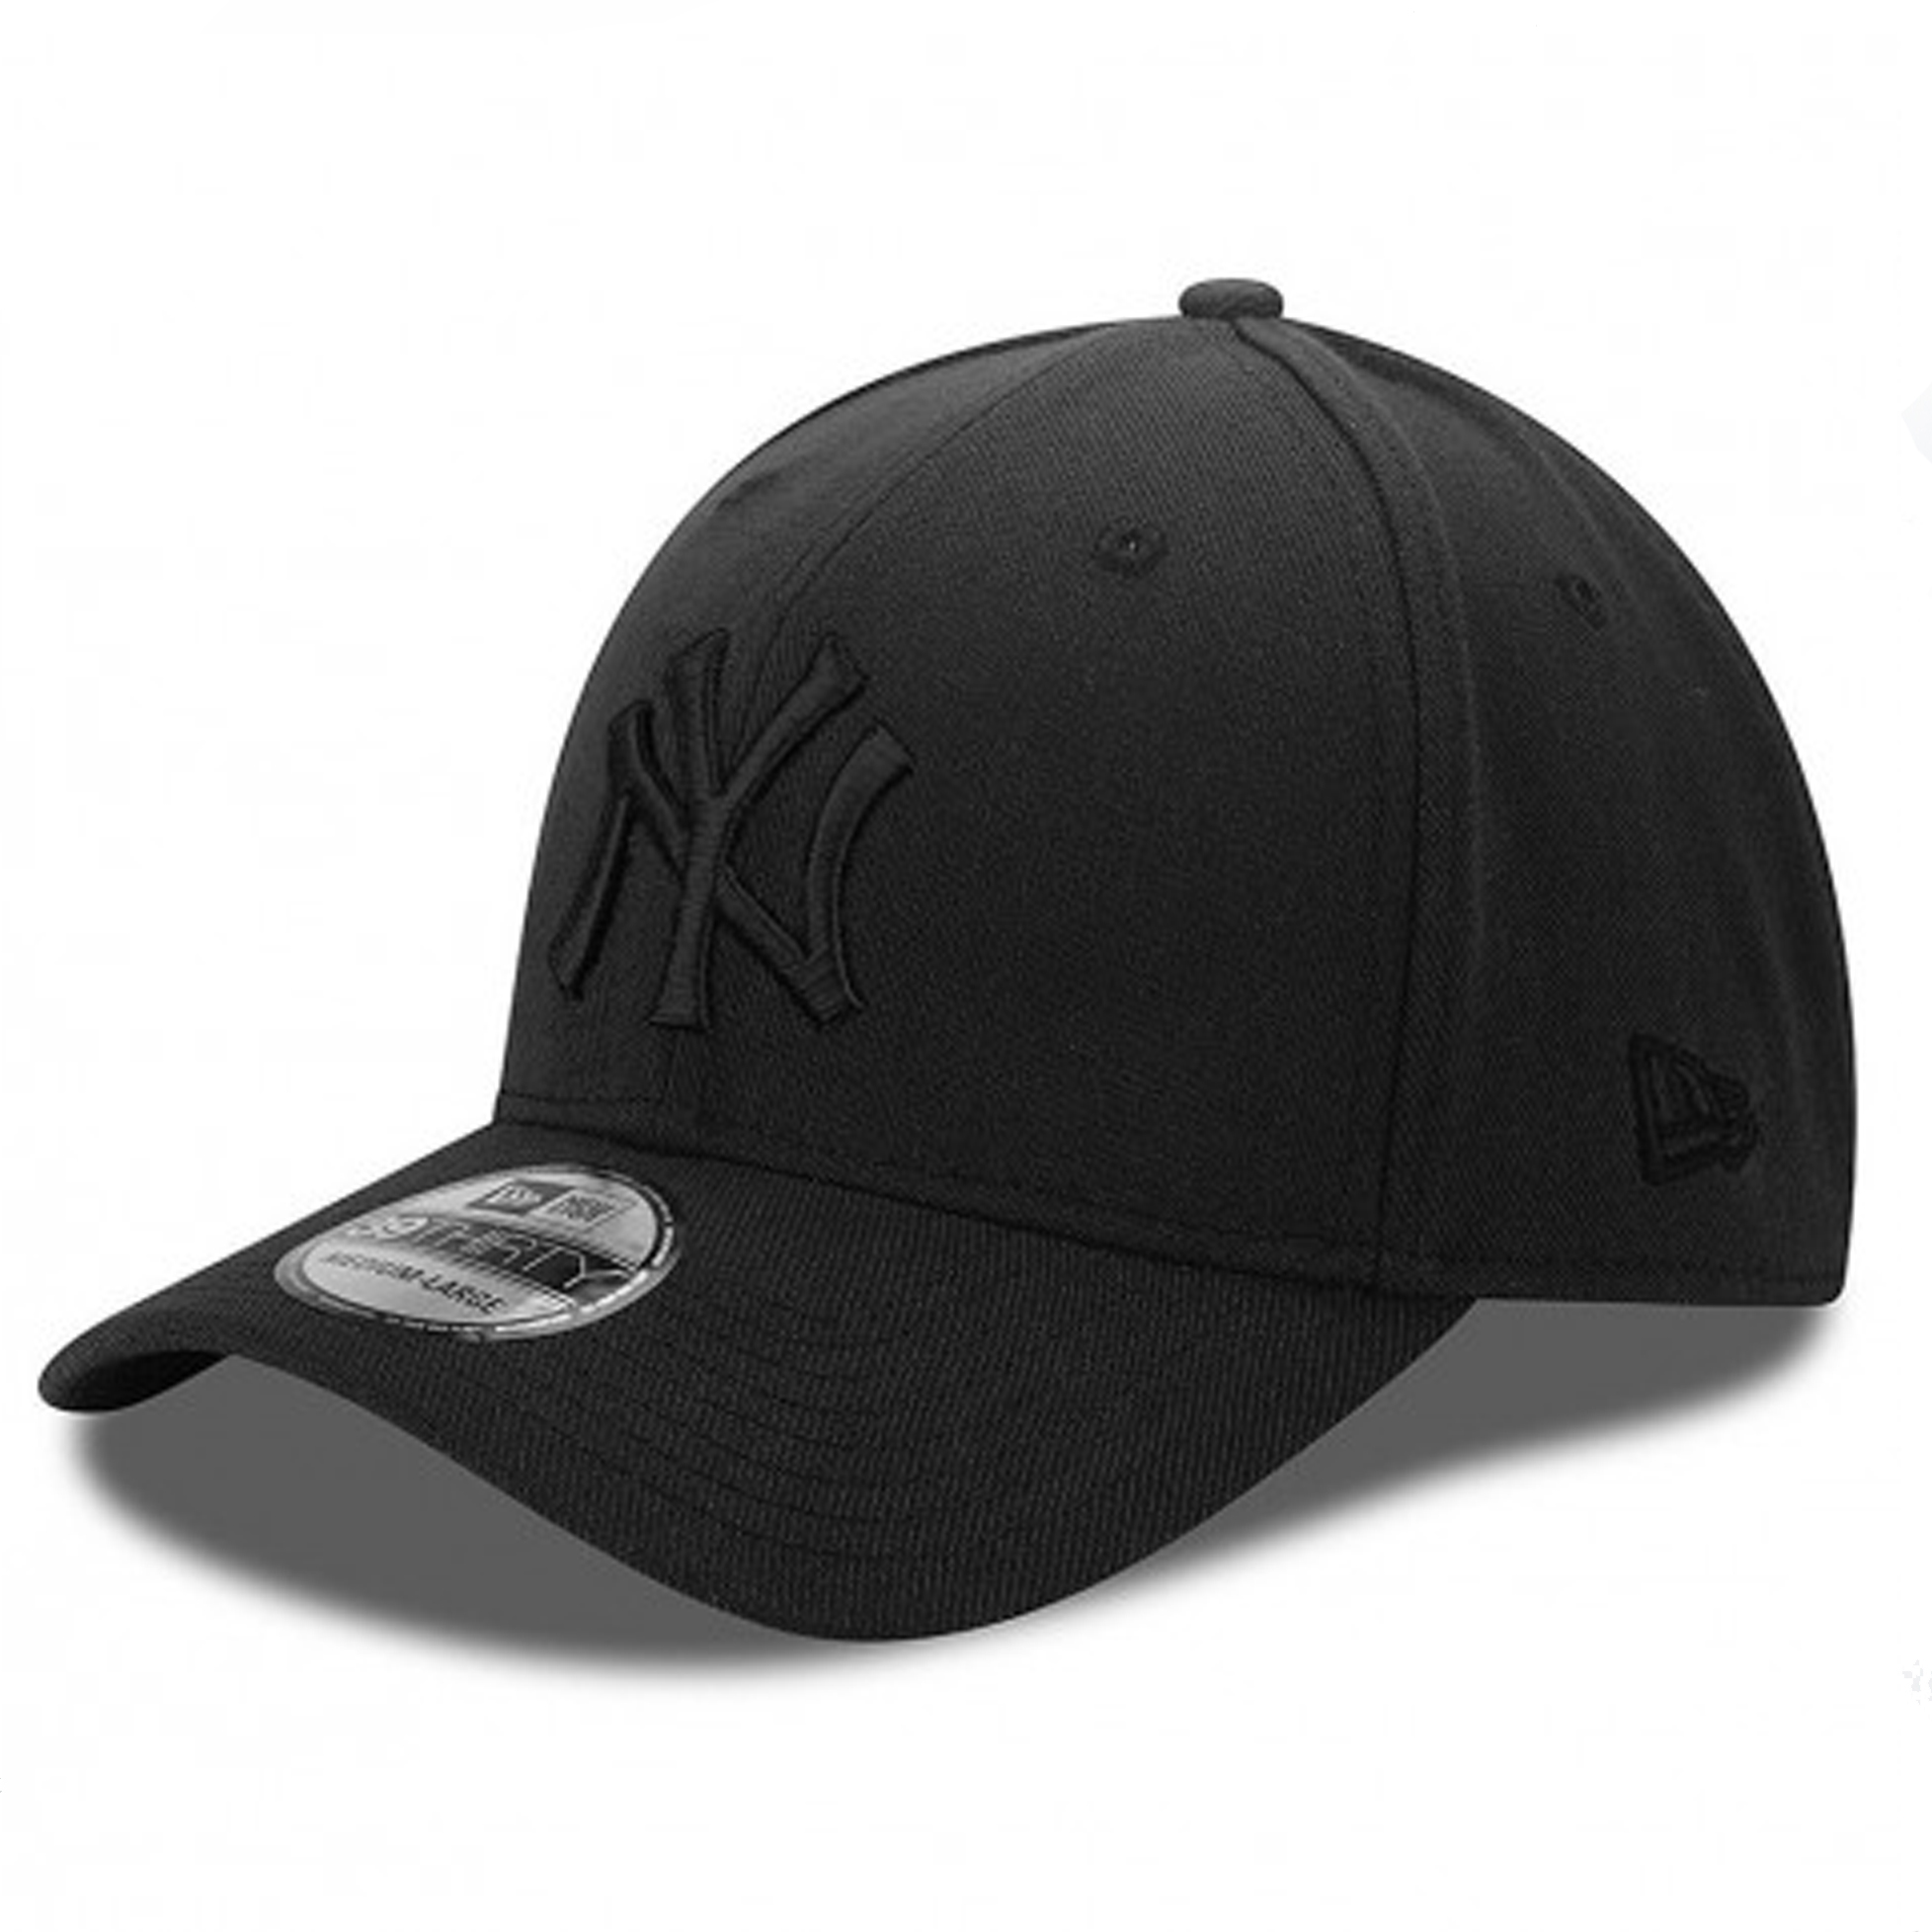 casquette ny homme